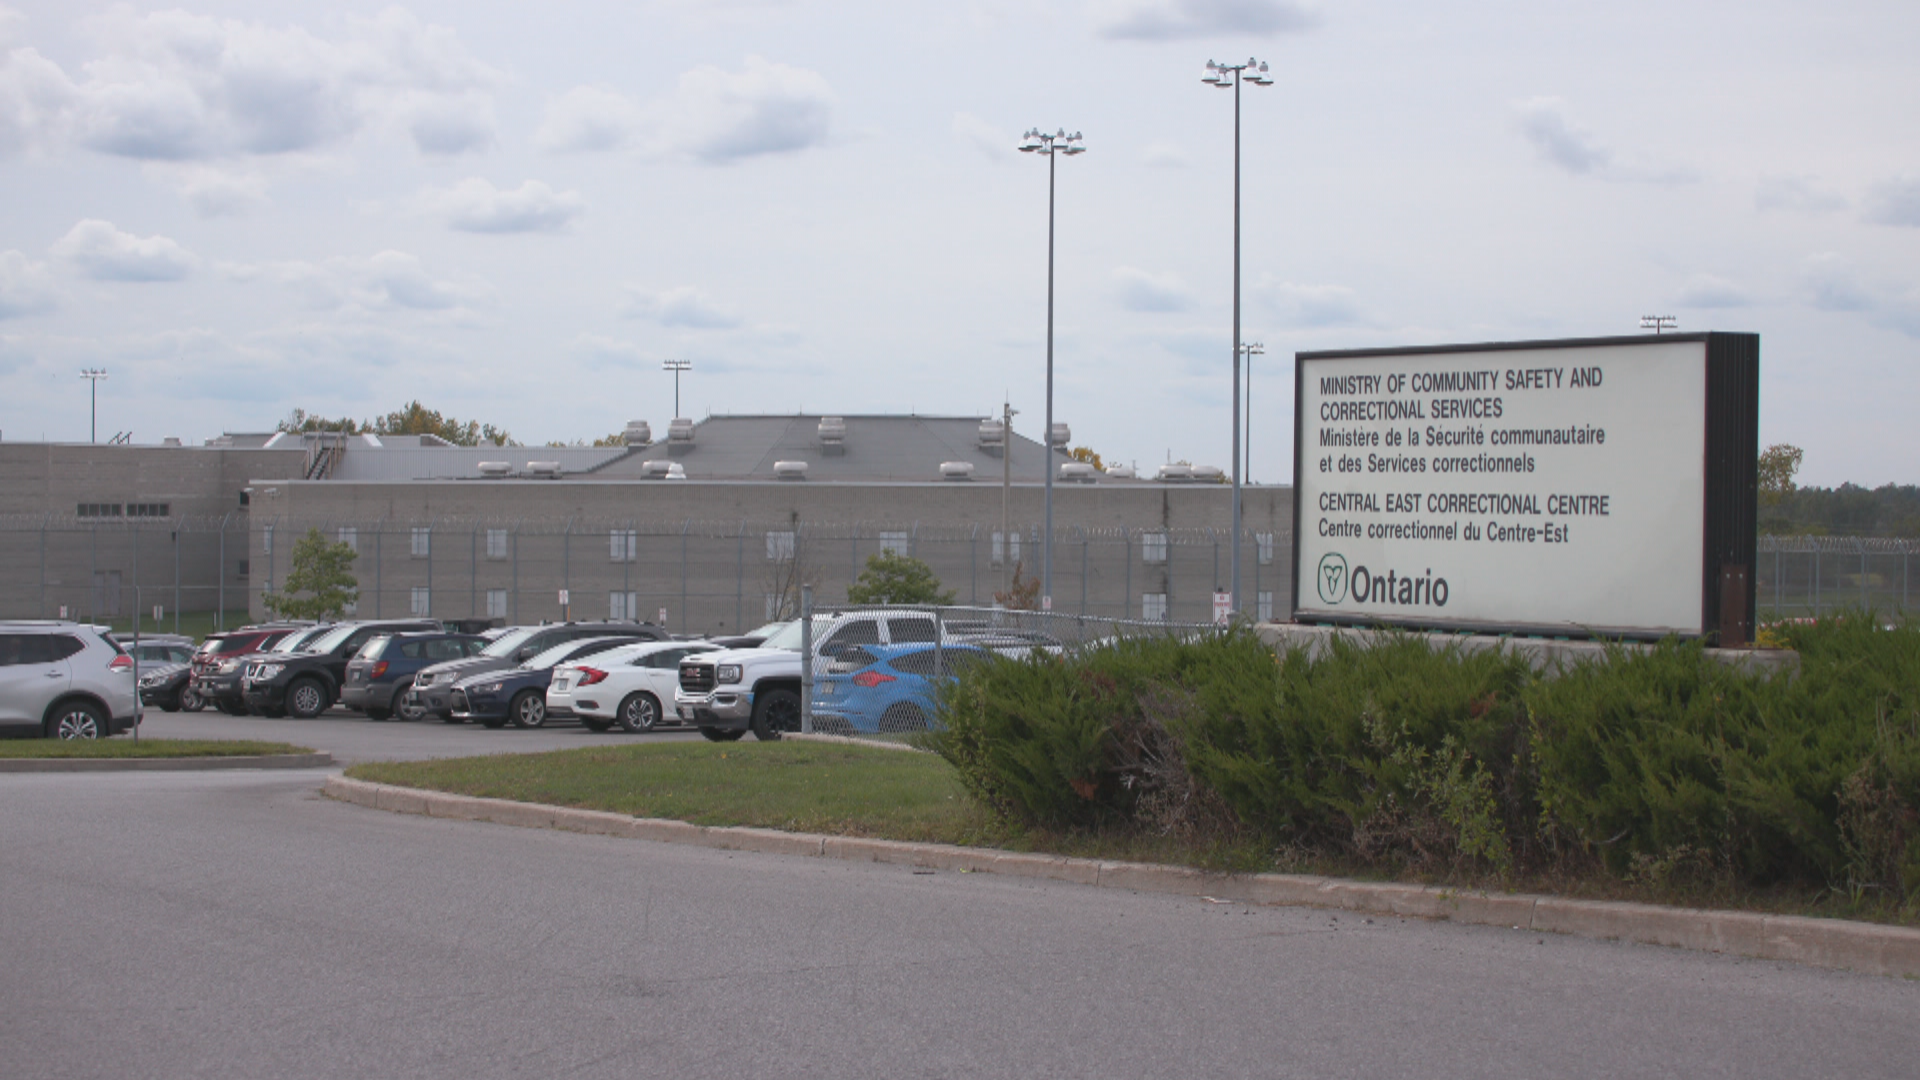 Before he was taken to the Central East Correctional Centre, Faqiri had been apprehended about 10 times under Ontario's Mental Health Act. Each time, his family says, he was taken to a hospital. This time, he was taken to jail. (Ousama Farag/CBC)